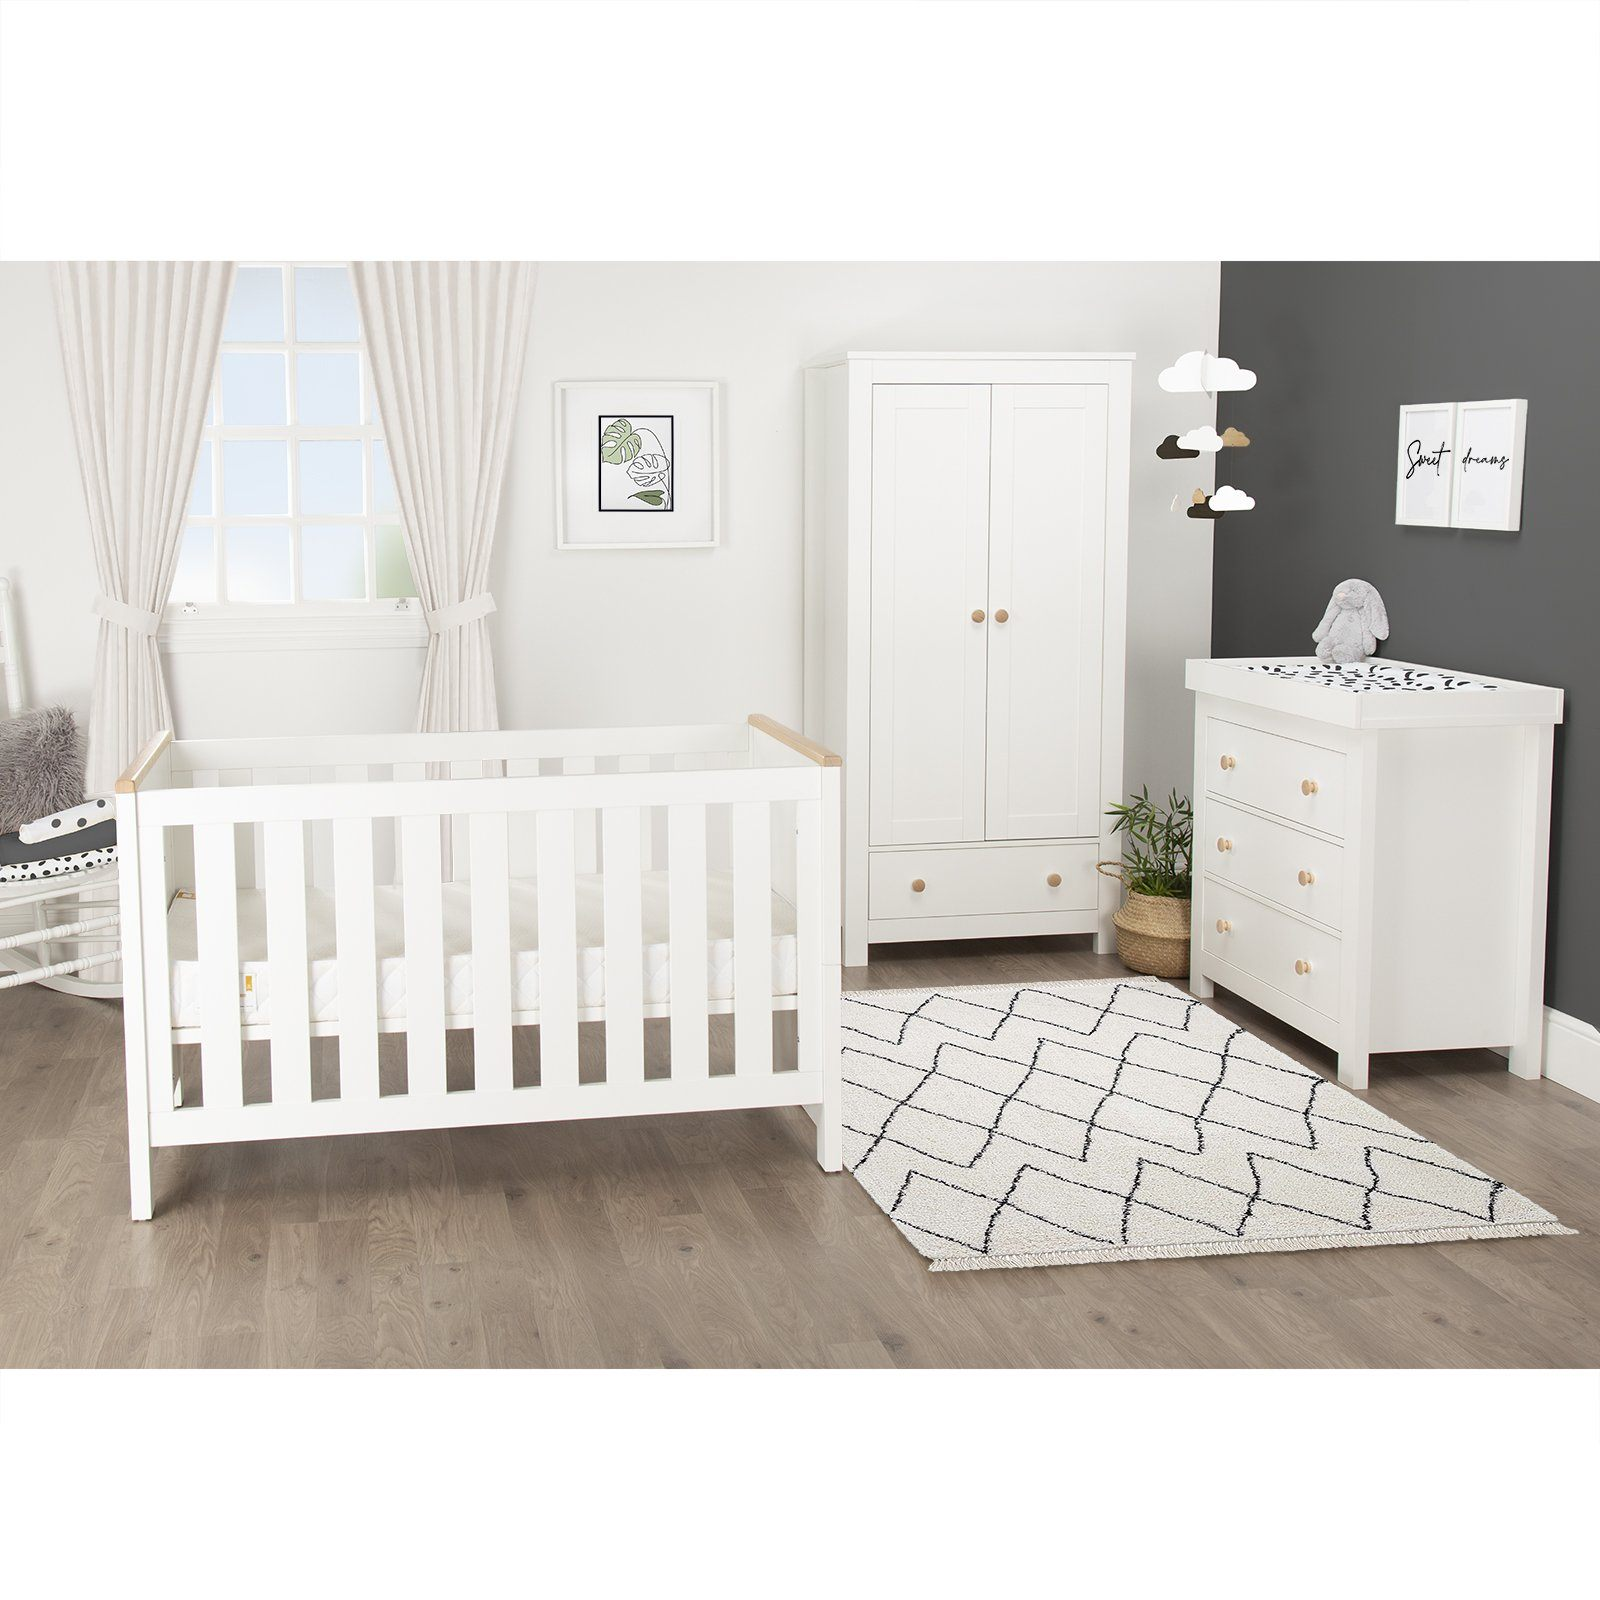 Aylesbury Cot Bed 140x70cm - White/Ash Furniture CuddleCo